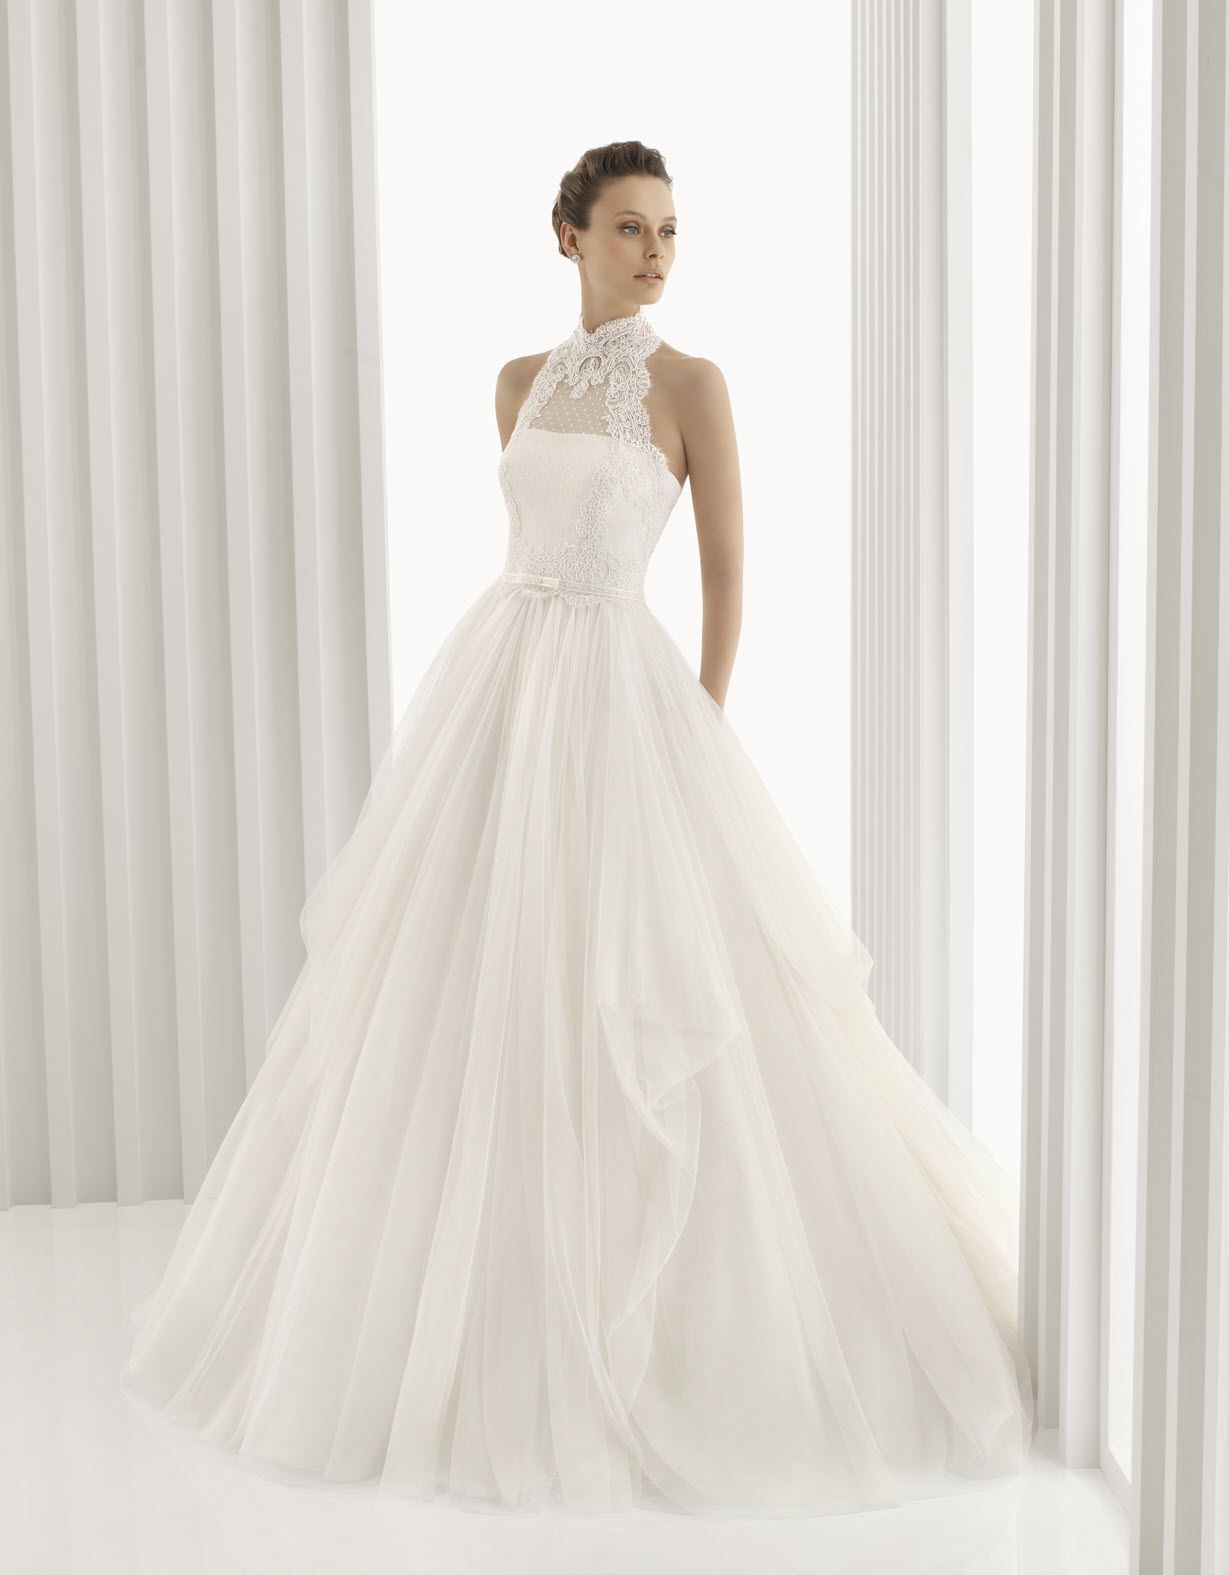 Romantic full a-line Rosa Clara bridal gown with high neck lace ...